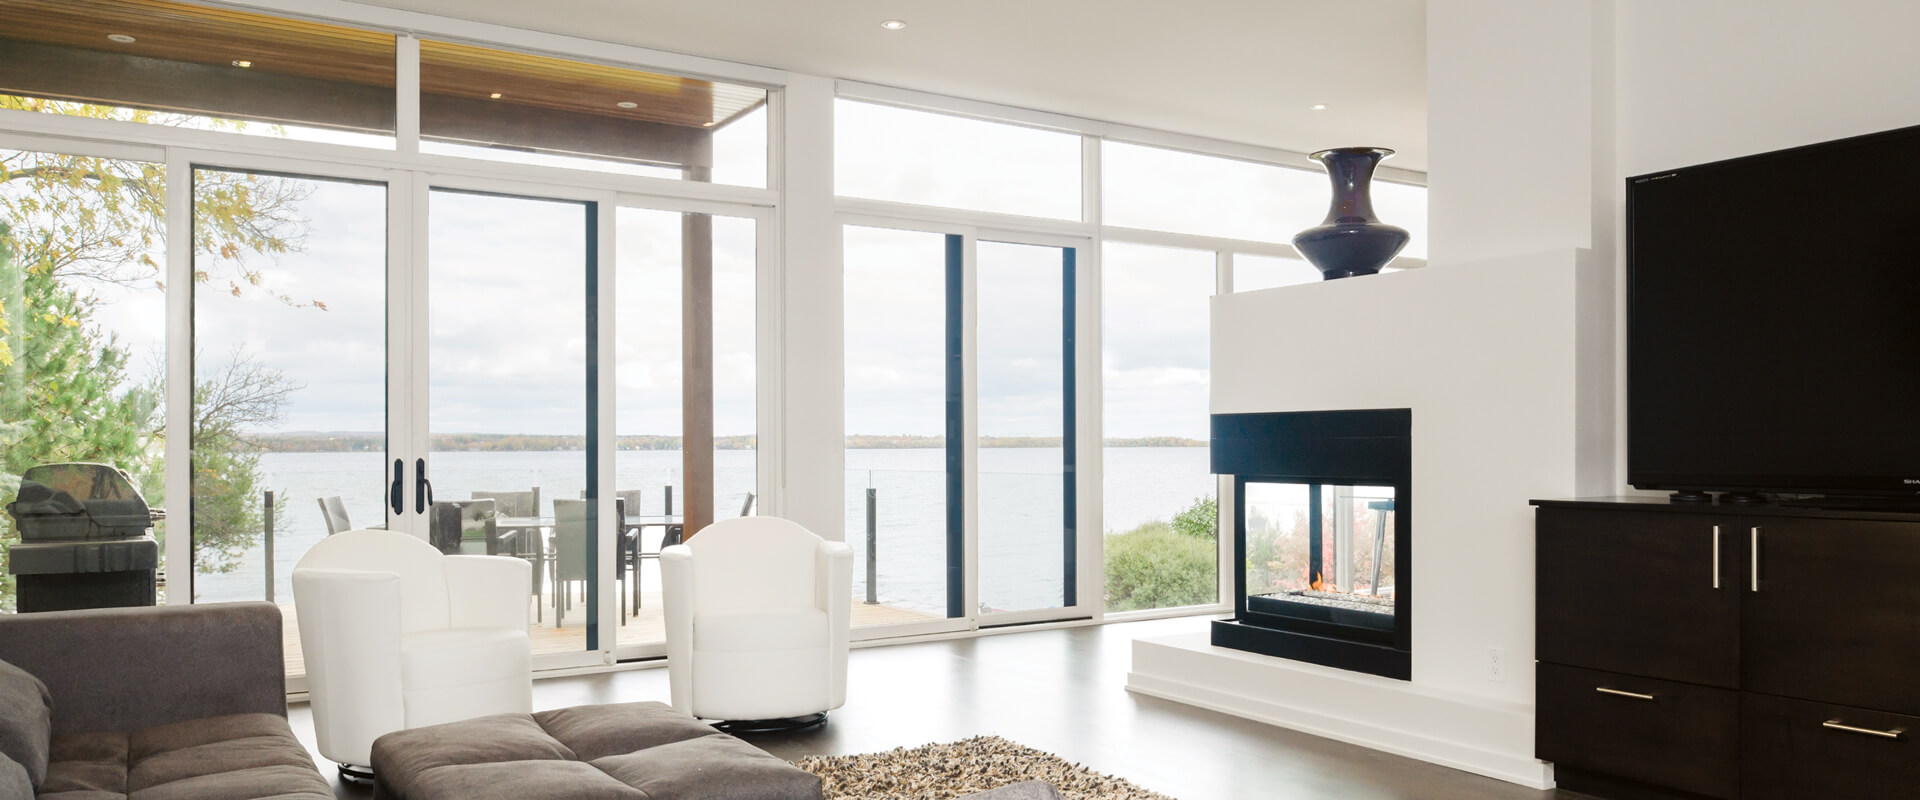 Vistaluxe Complementary Multi Slide Doors Kolbe Windows